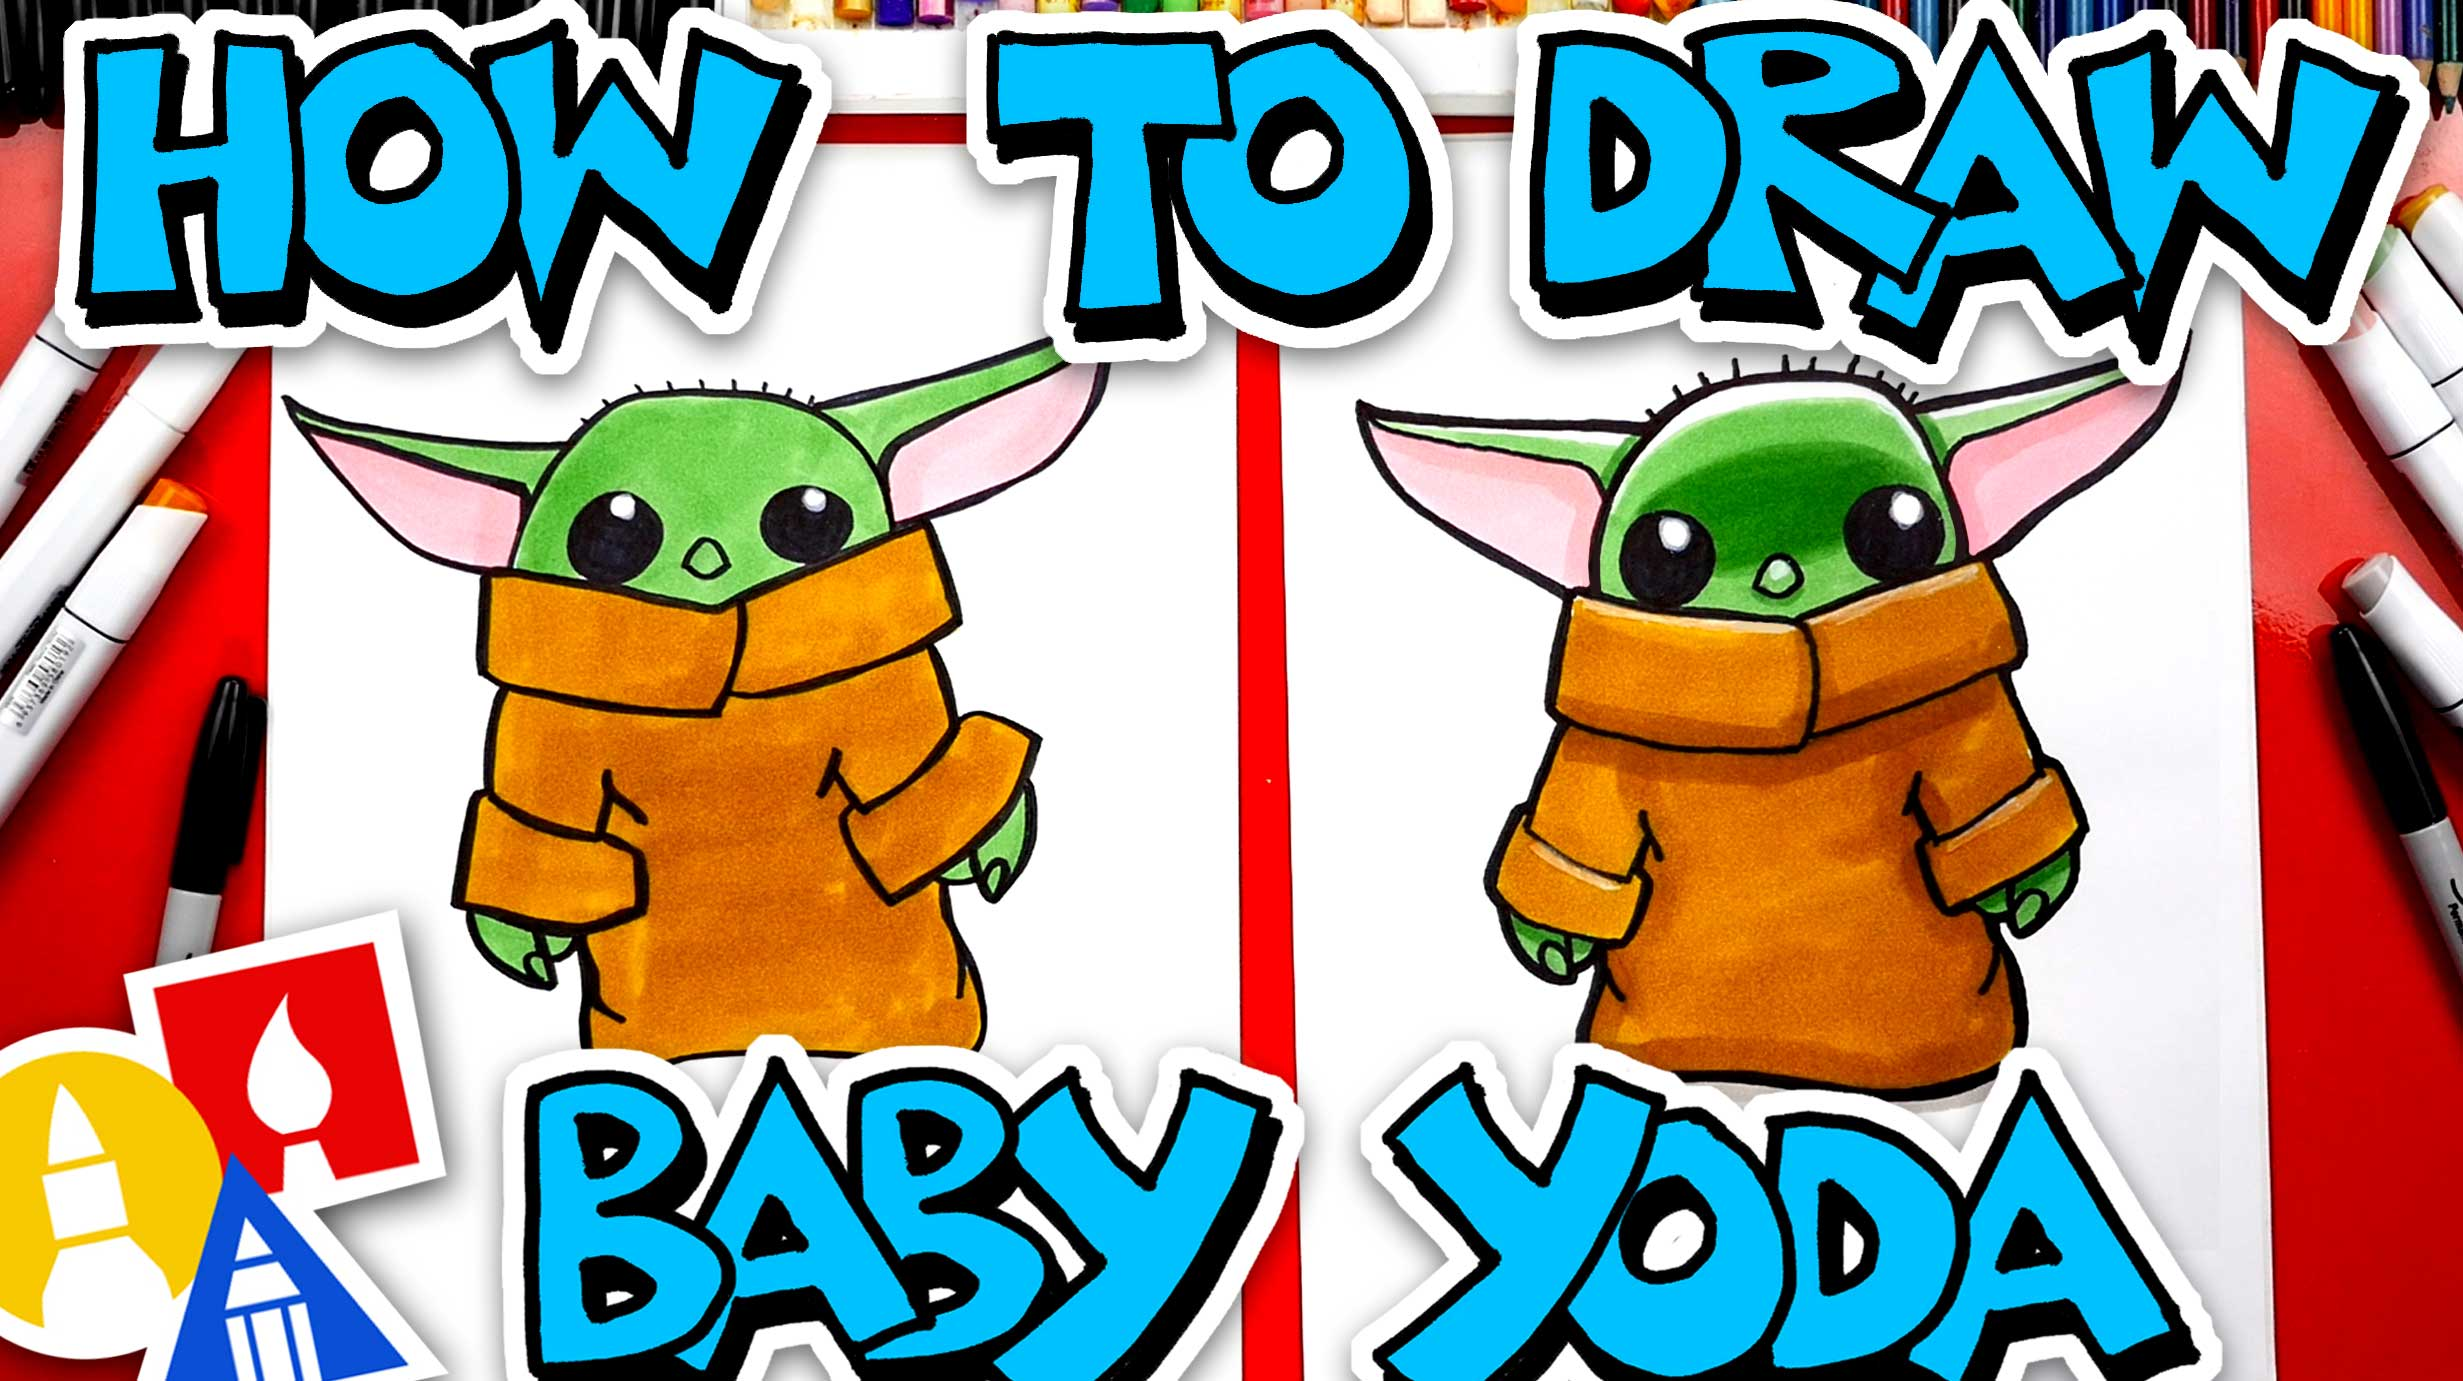 How To Draw Baby Yoda From The Mandalorian - Art For Kids ...